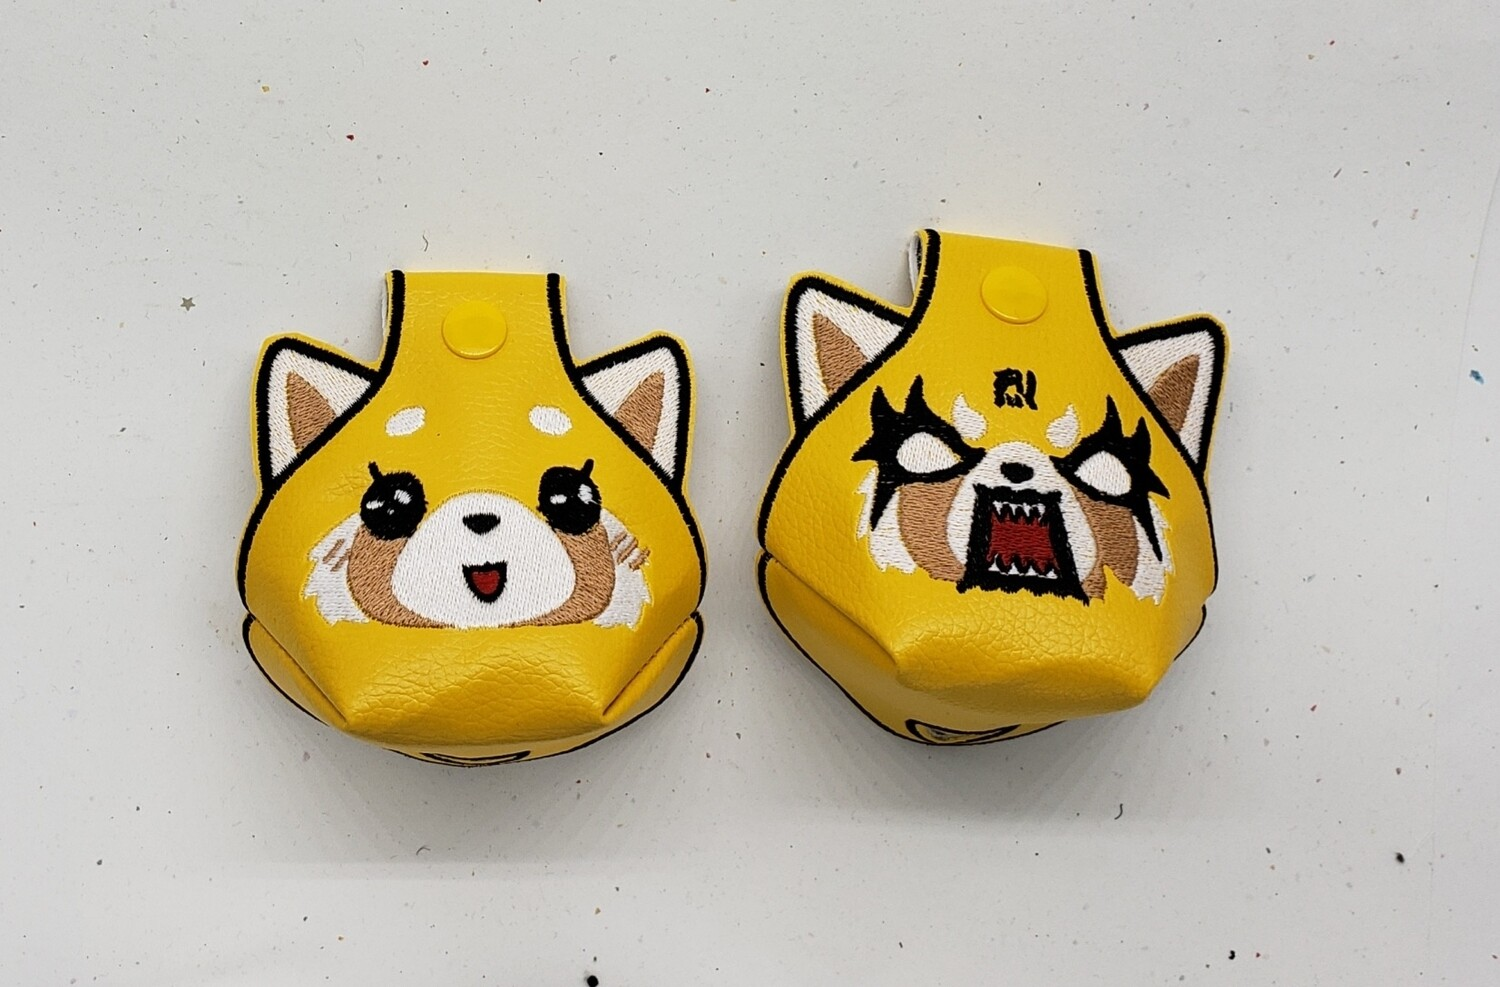 Aggretsuko (angry and cute)Toe guards